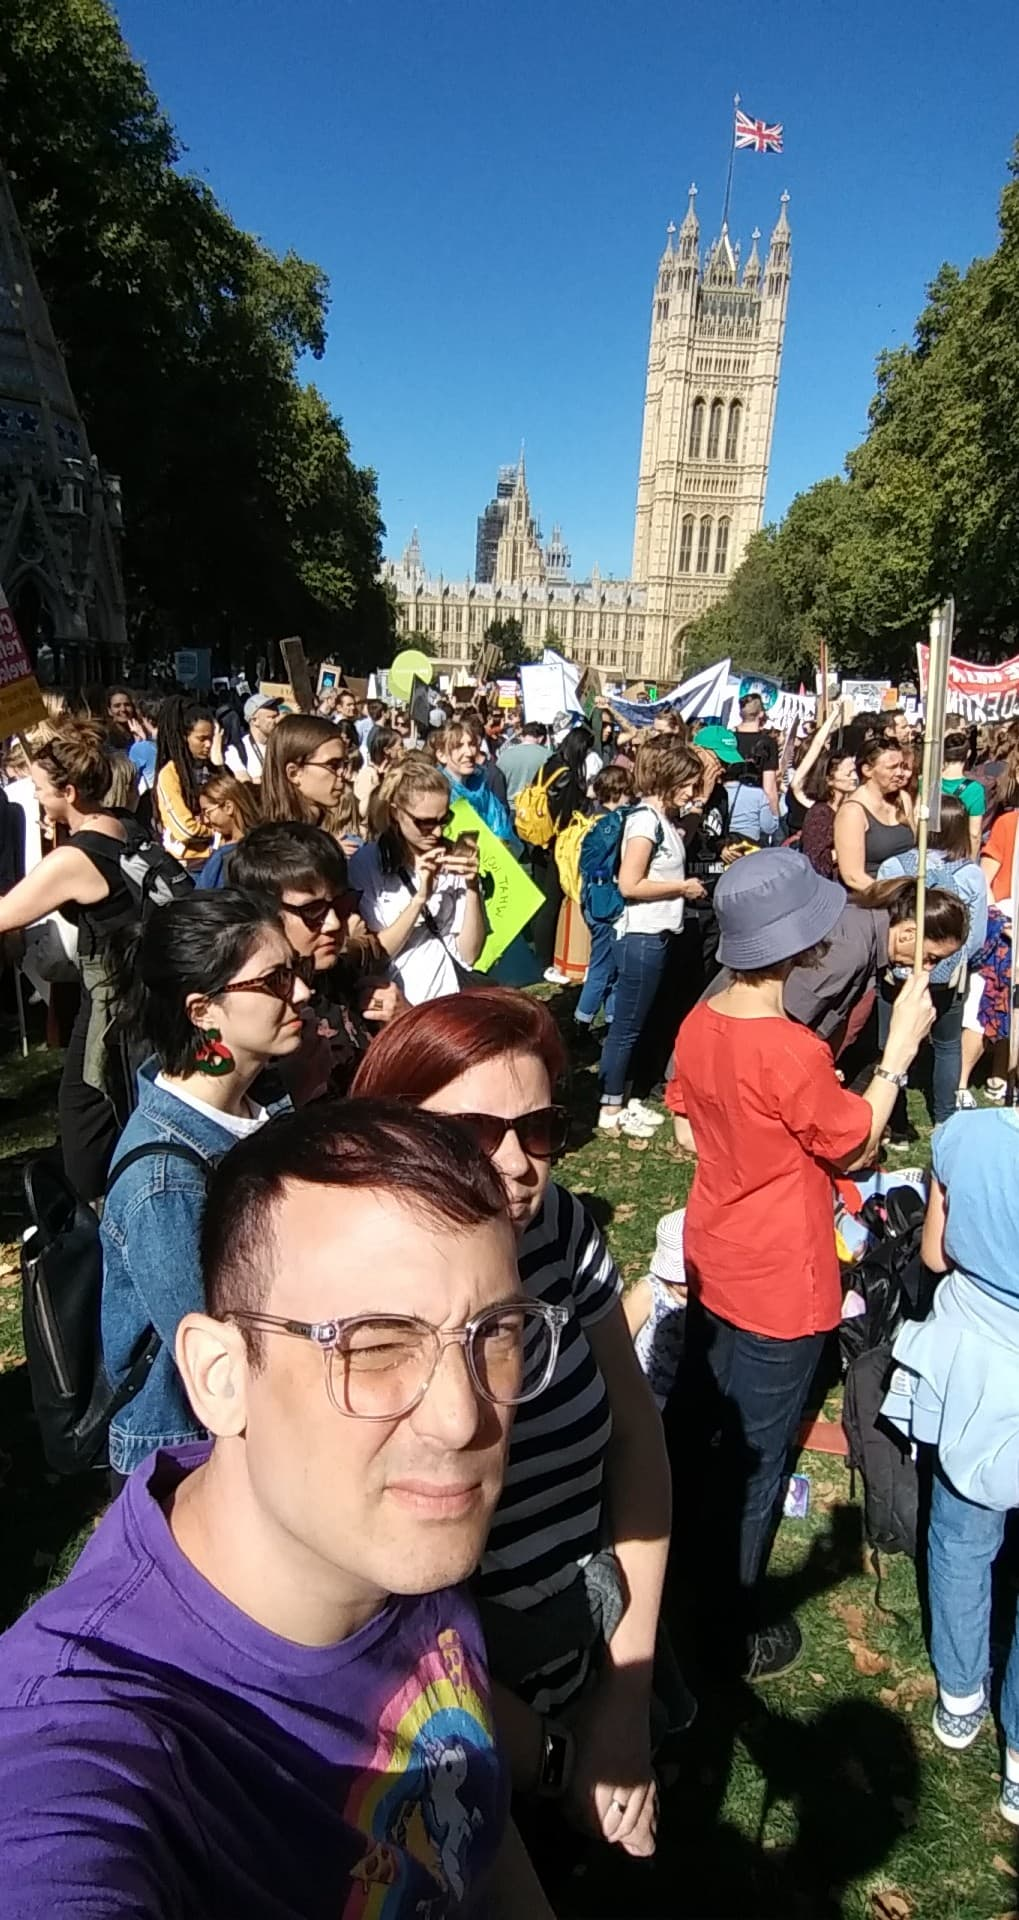 Ean and Victoria standing amongst thousands of climate change protesters